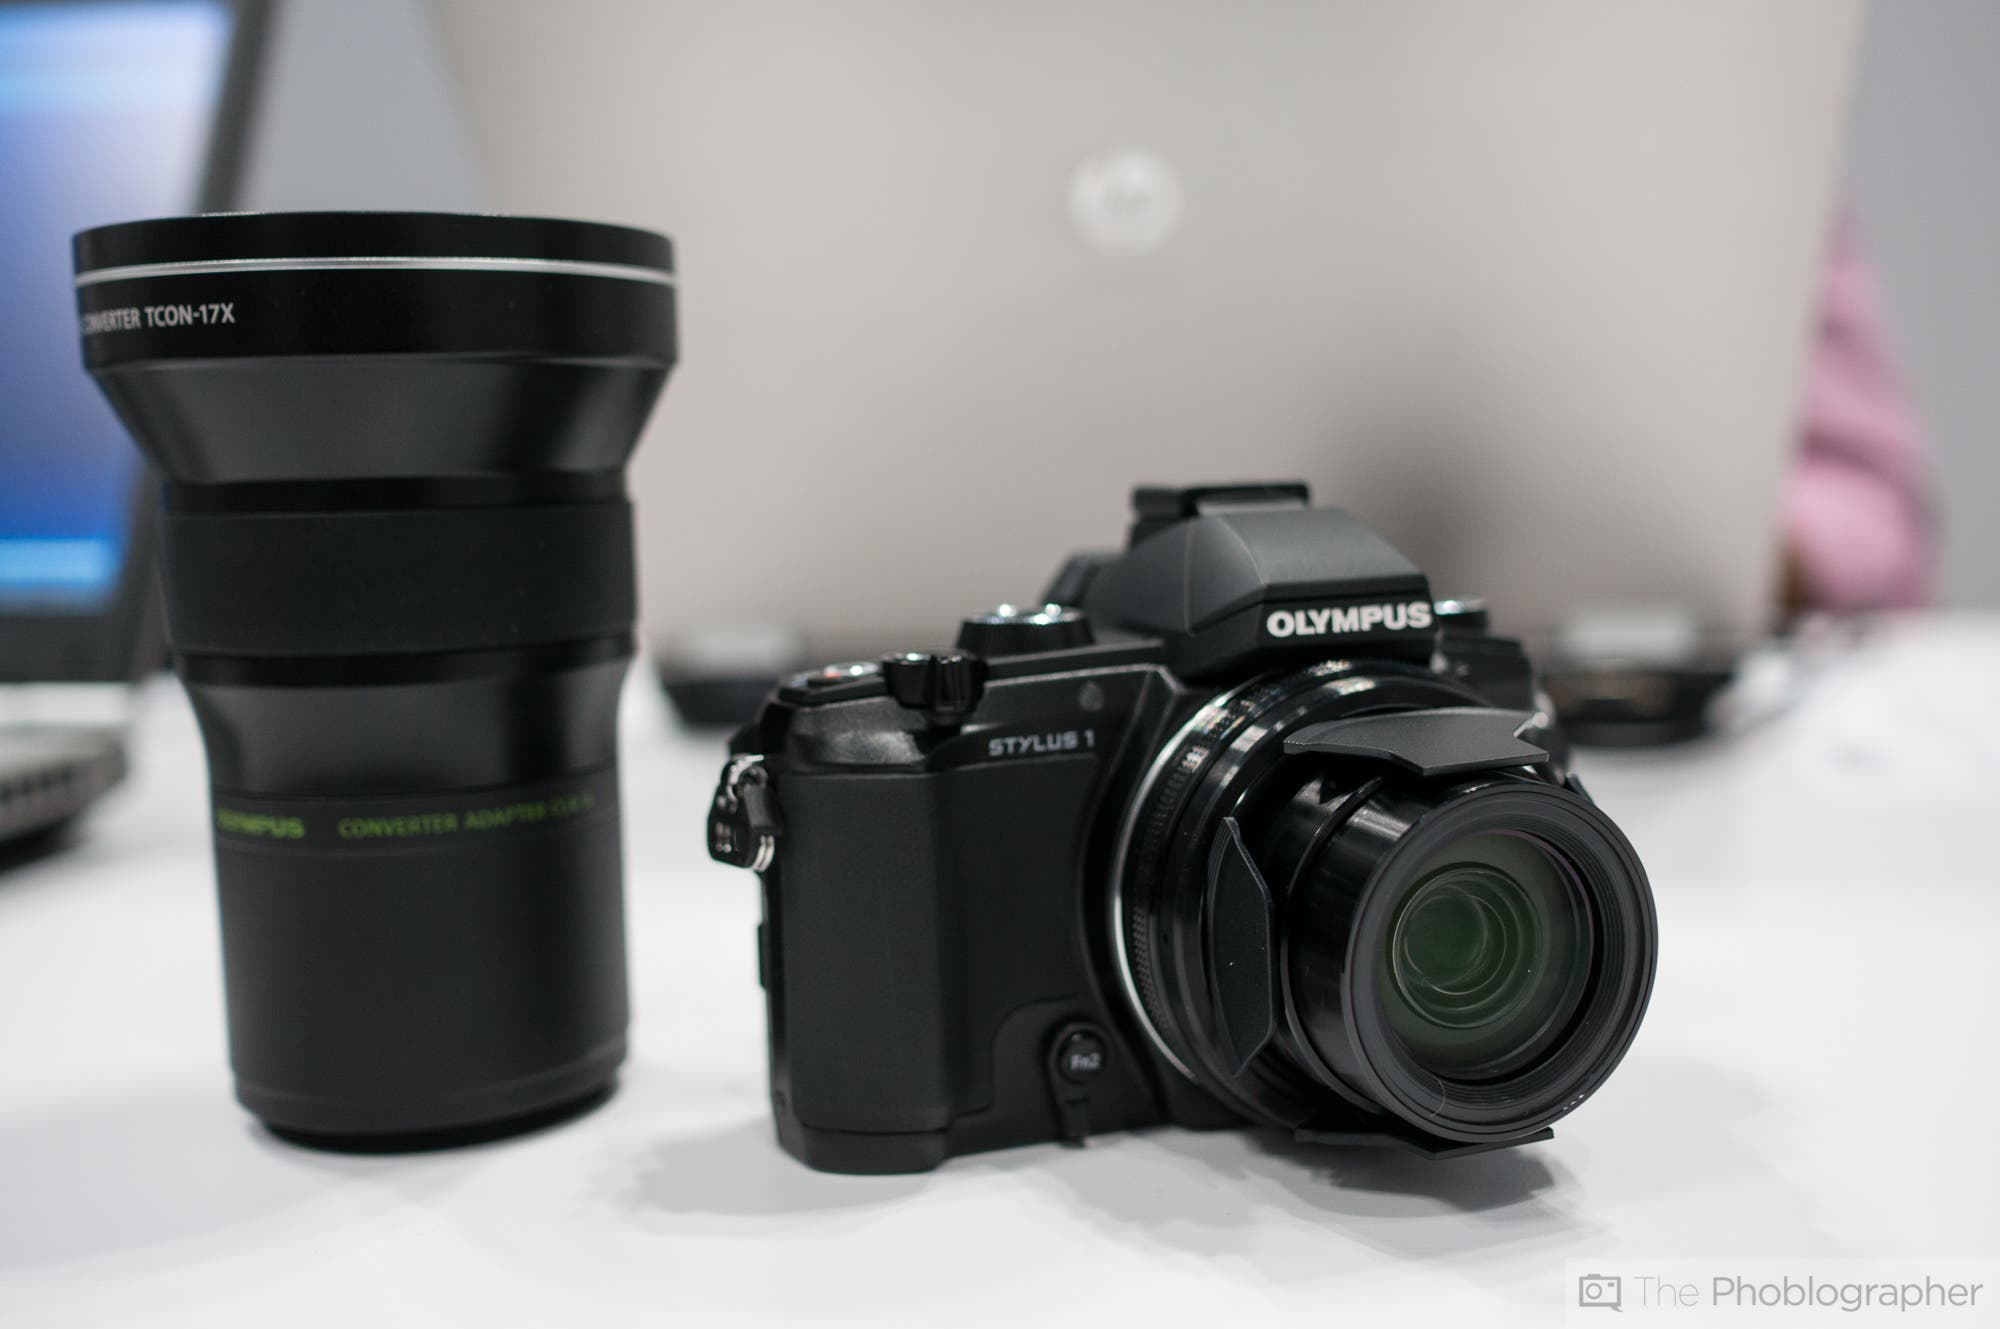 Olympus's Stylus 1 is a Small Sensor, Fixed Lens OMD; Sort of